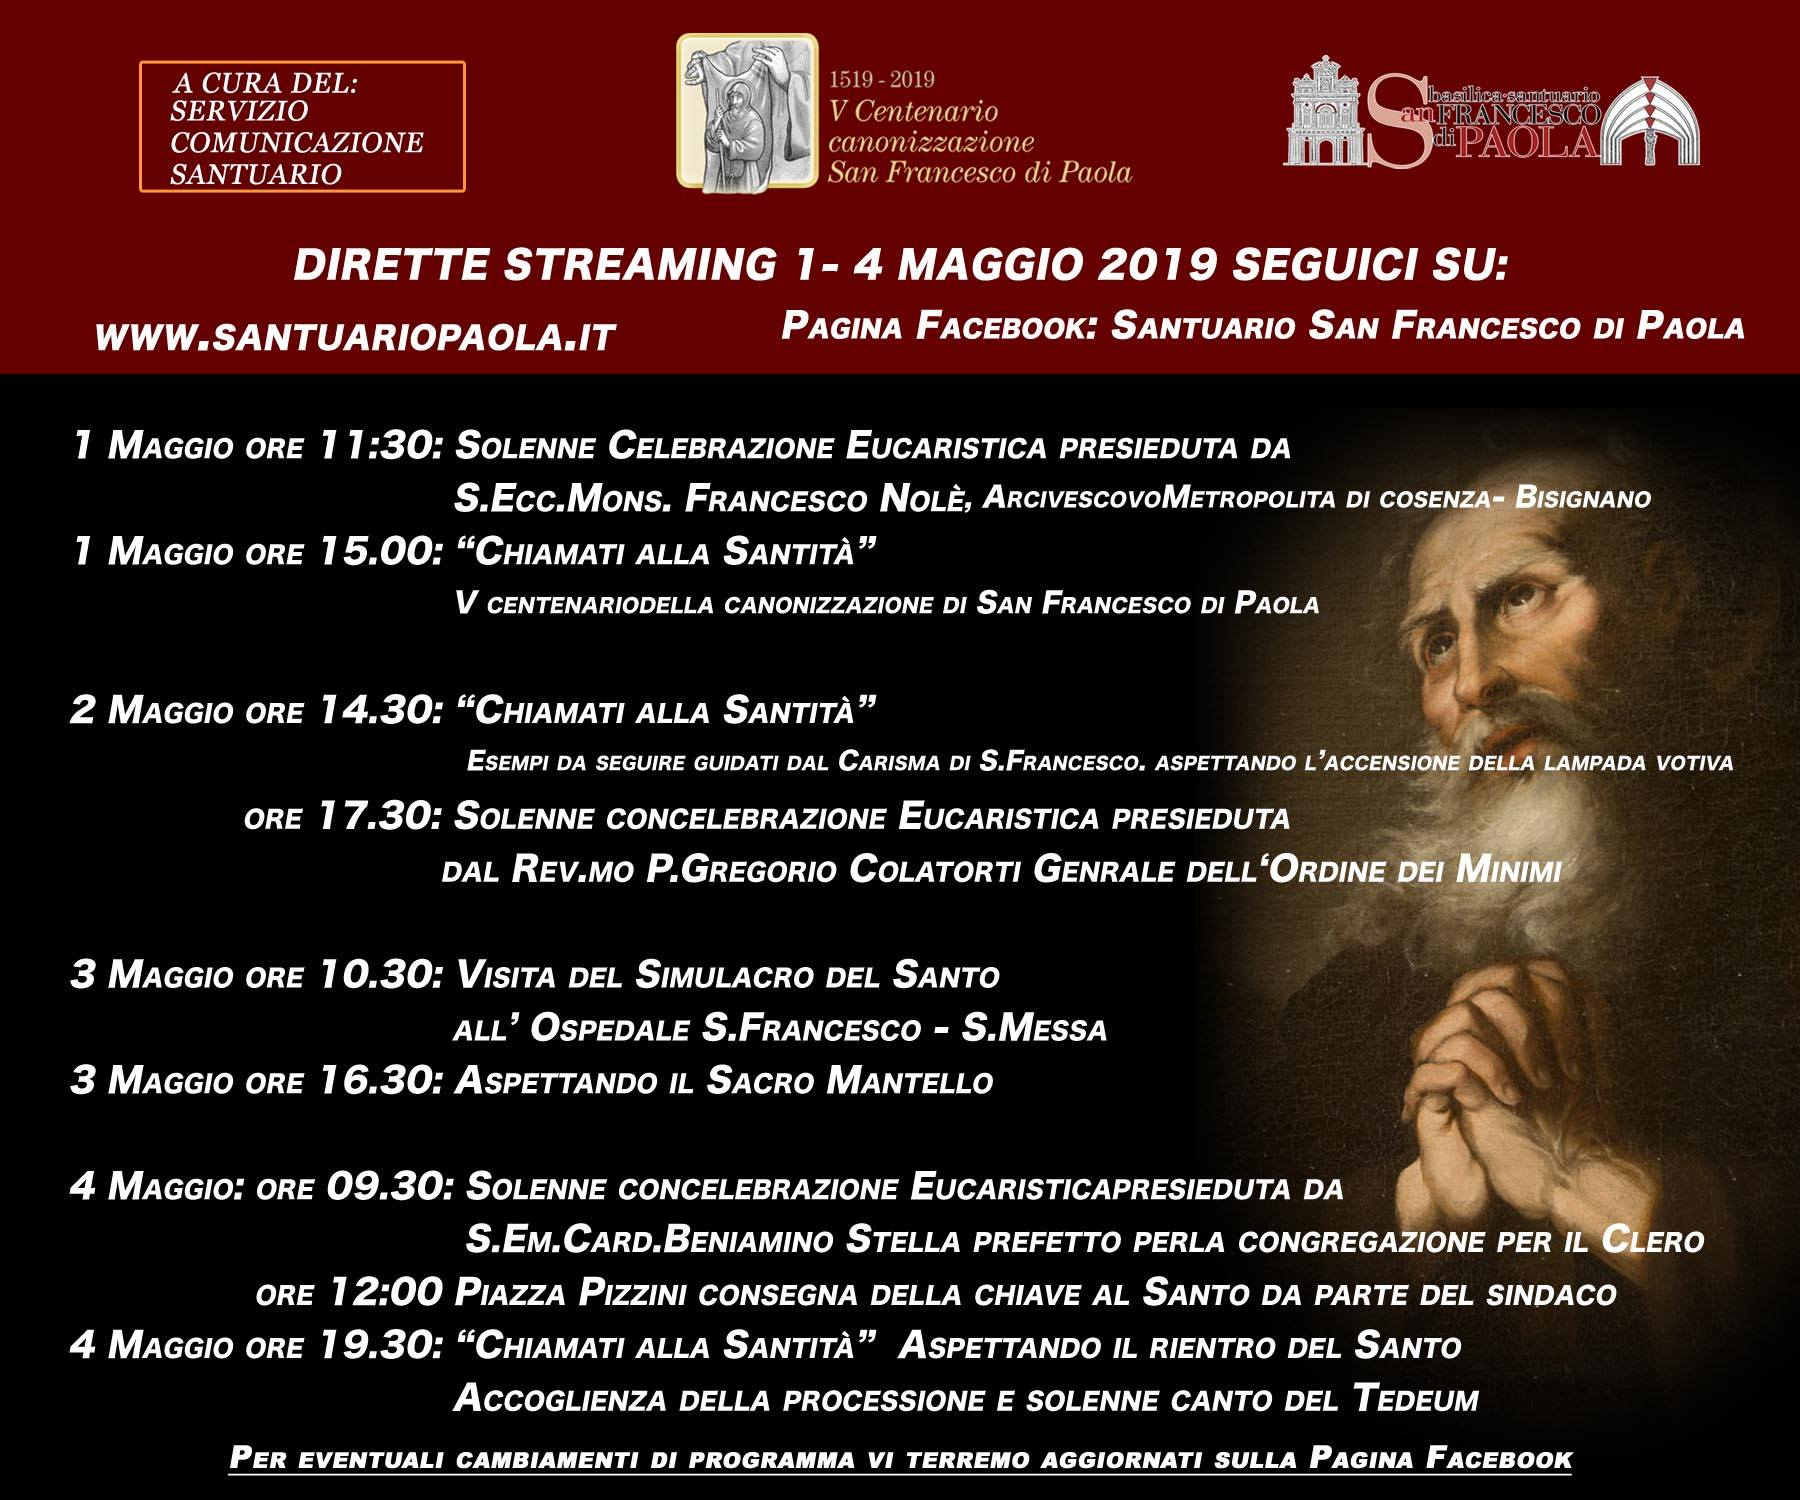 palinsesto streaming santuario